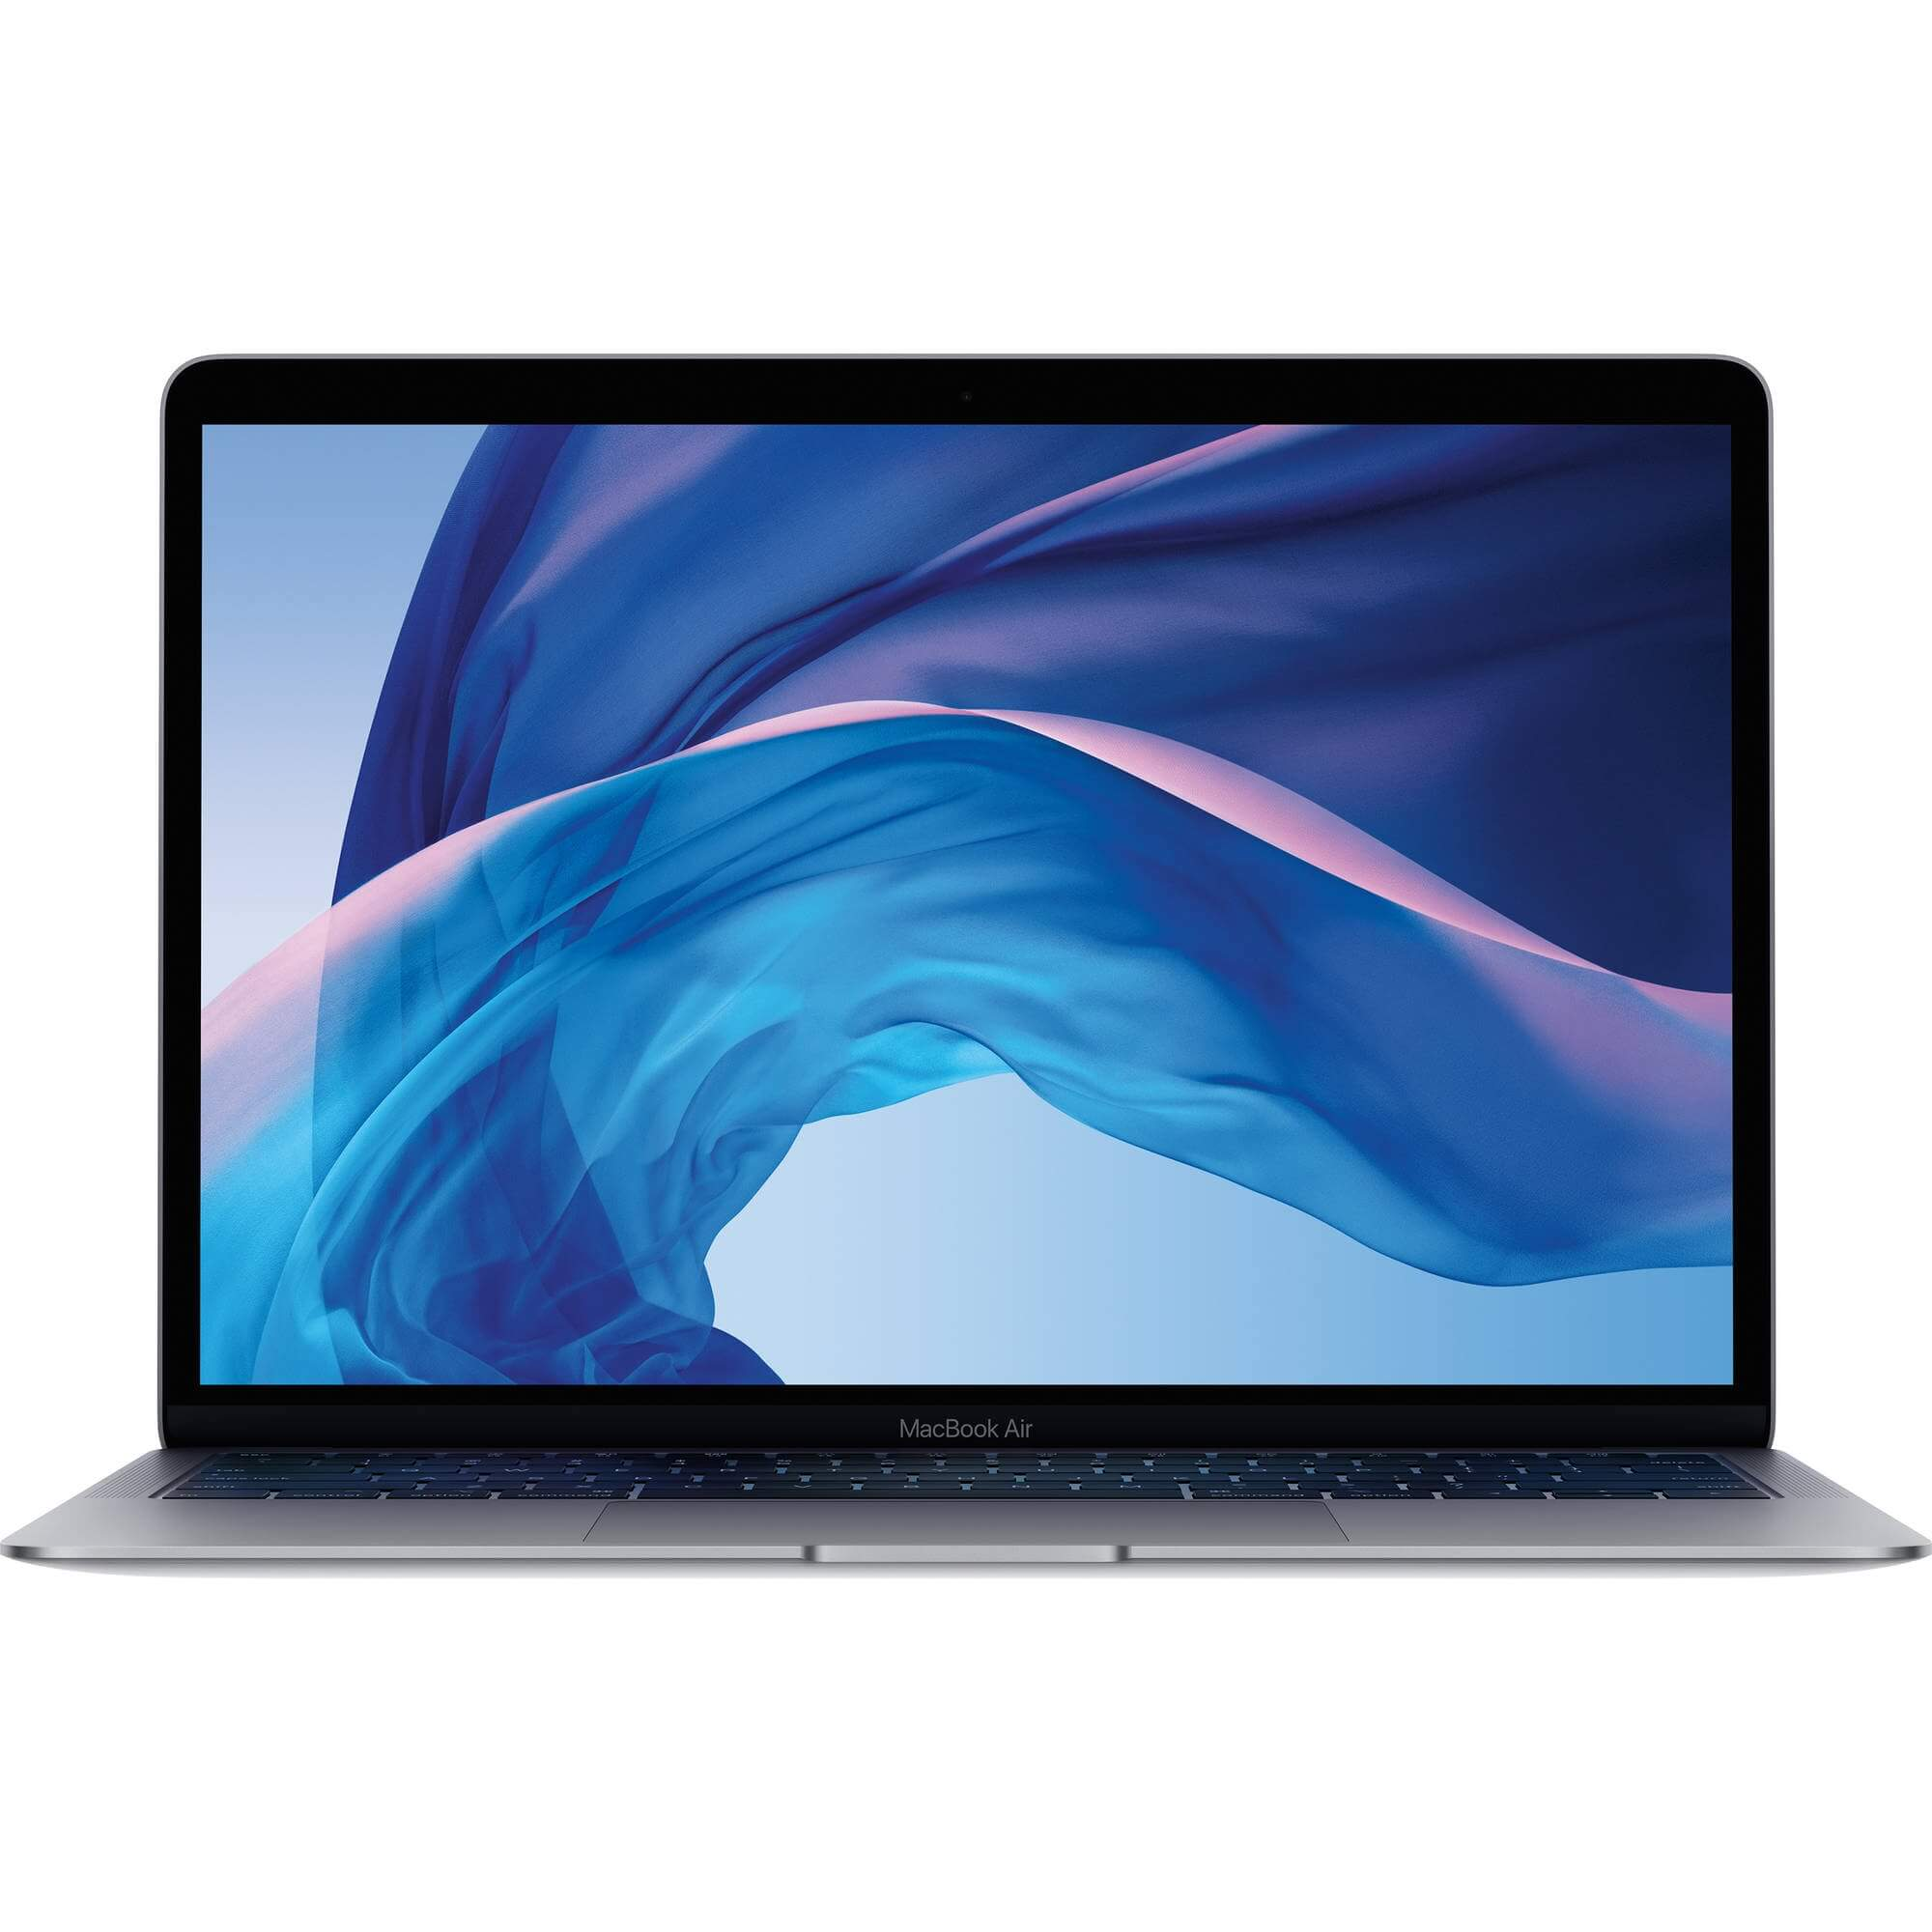 Apple Macbook Air 2018 Core i5,Ram 8GB, SSD 128GB, 13 Inch - MRE82LL